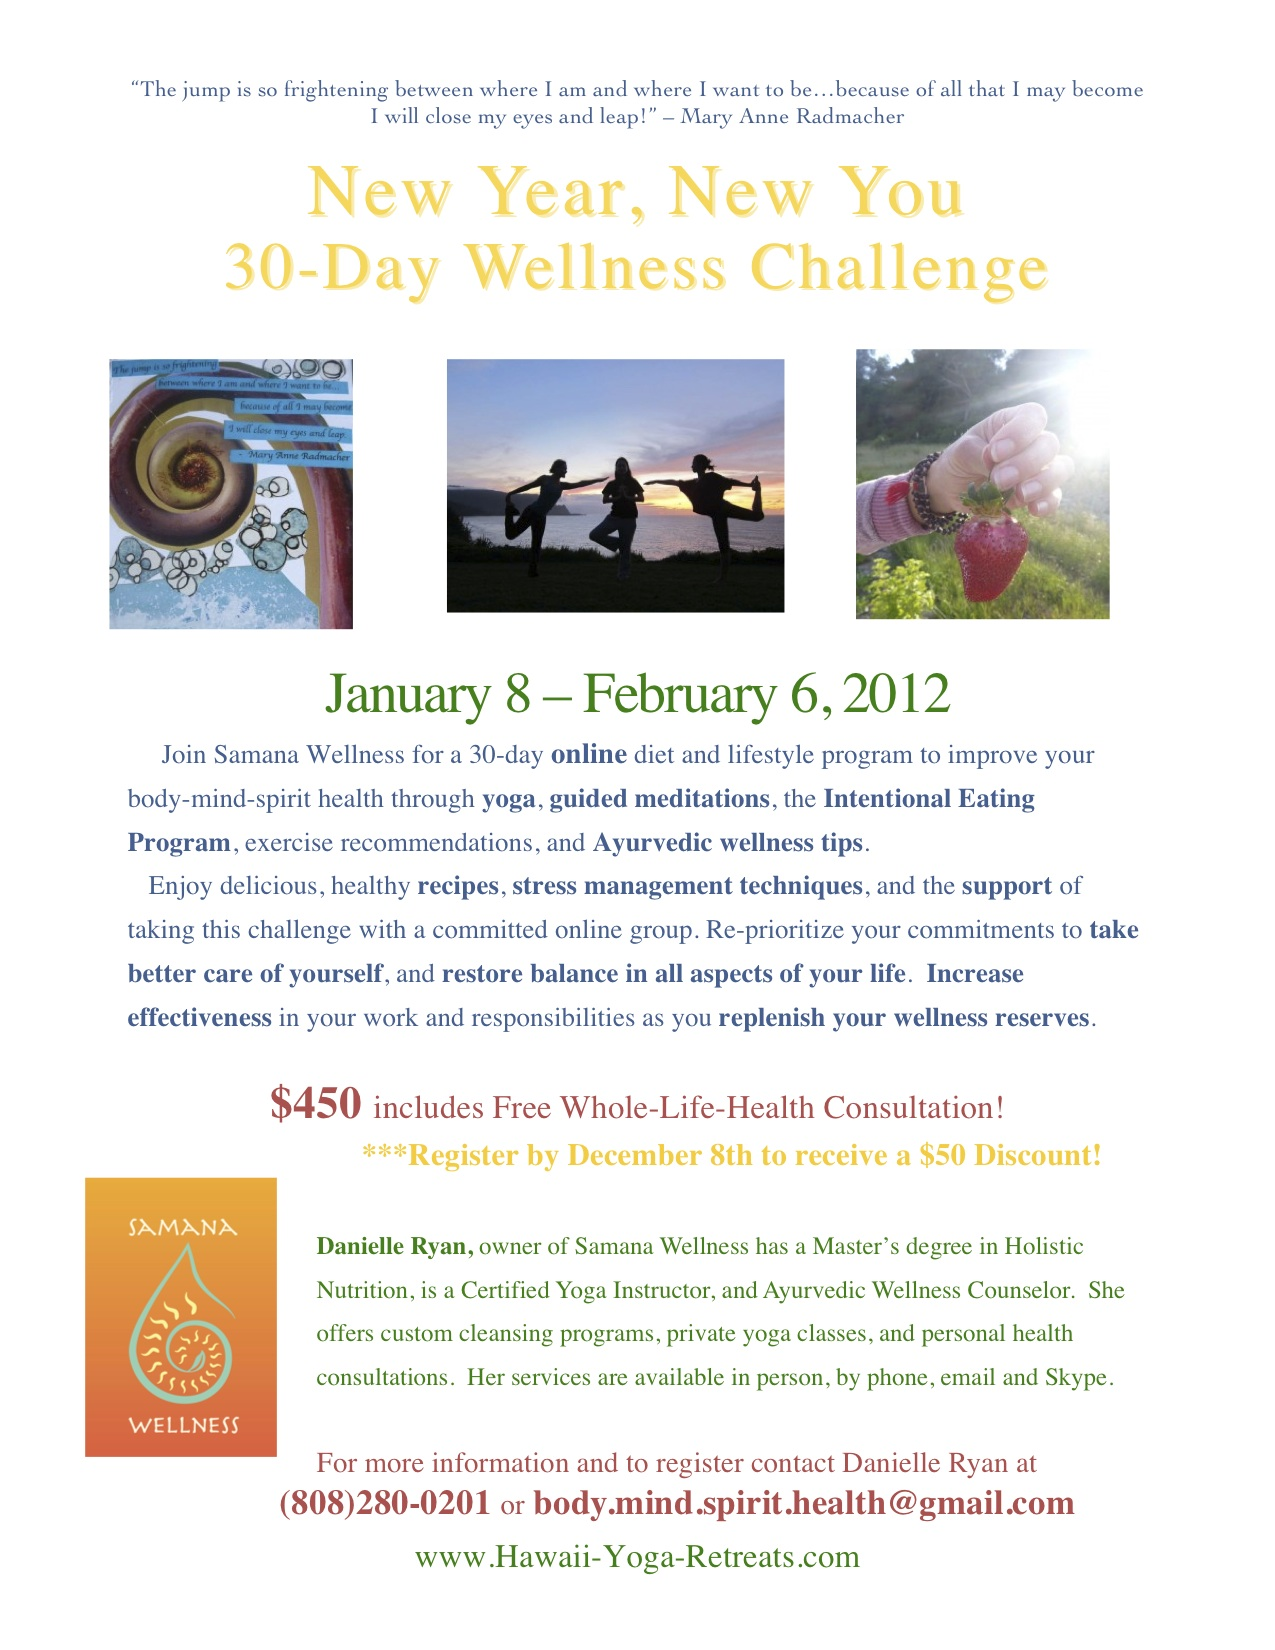 New Year New You Online Wellness Challenge